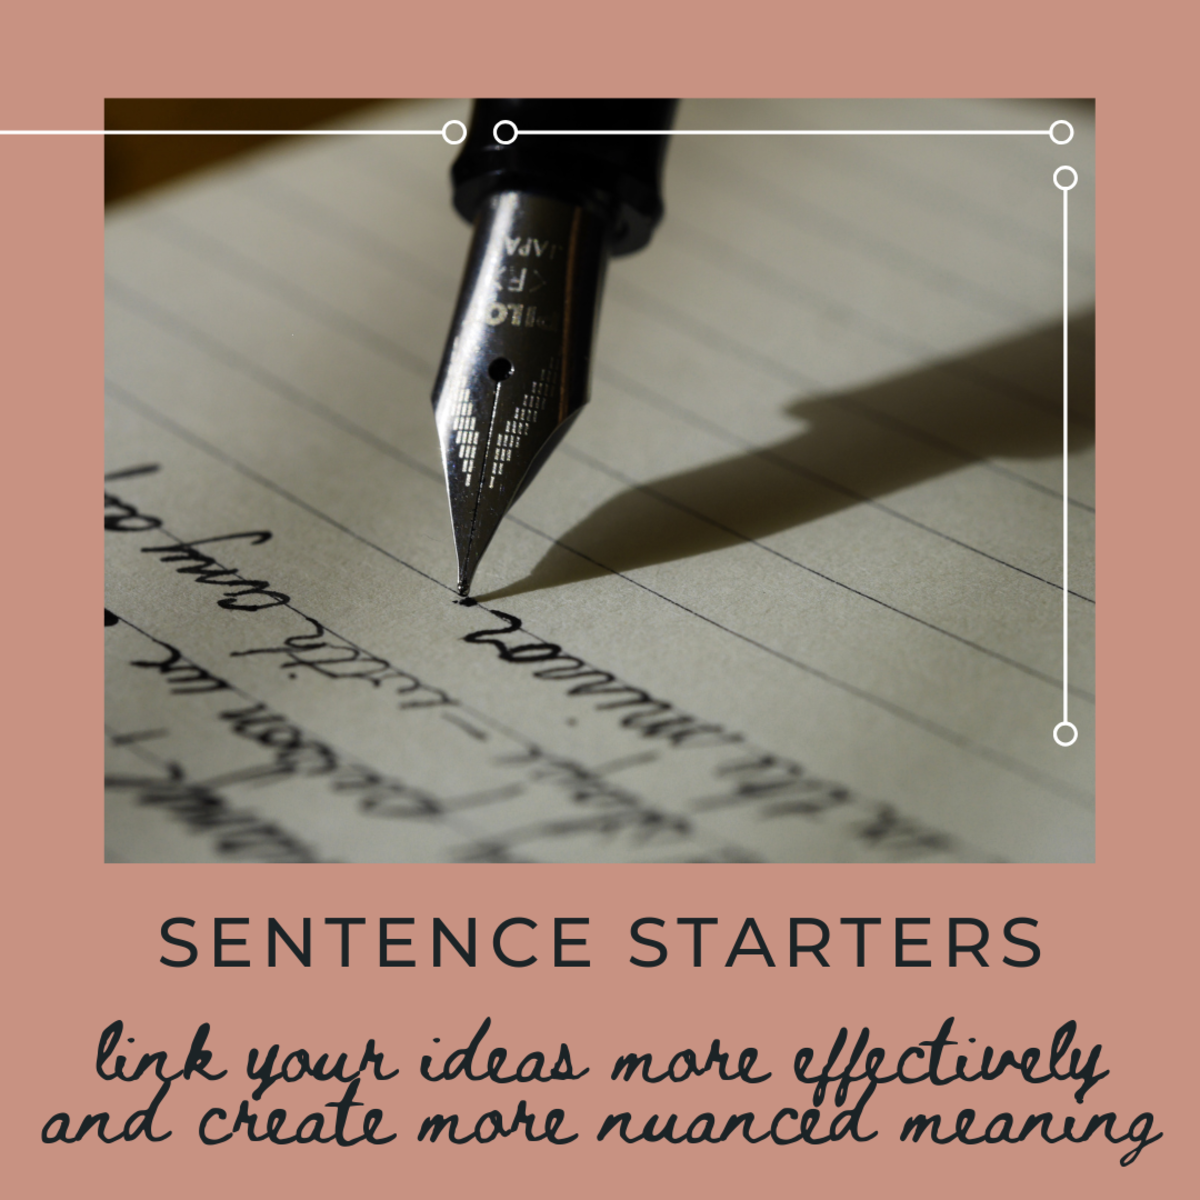 You've heard of sentence starters, but how do you use them? Read on to learn how!